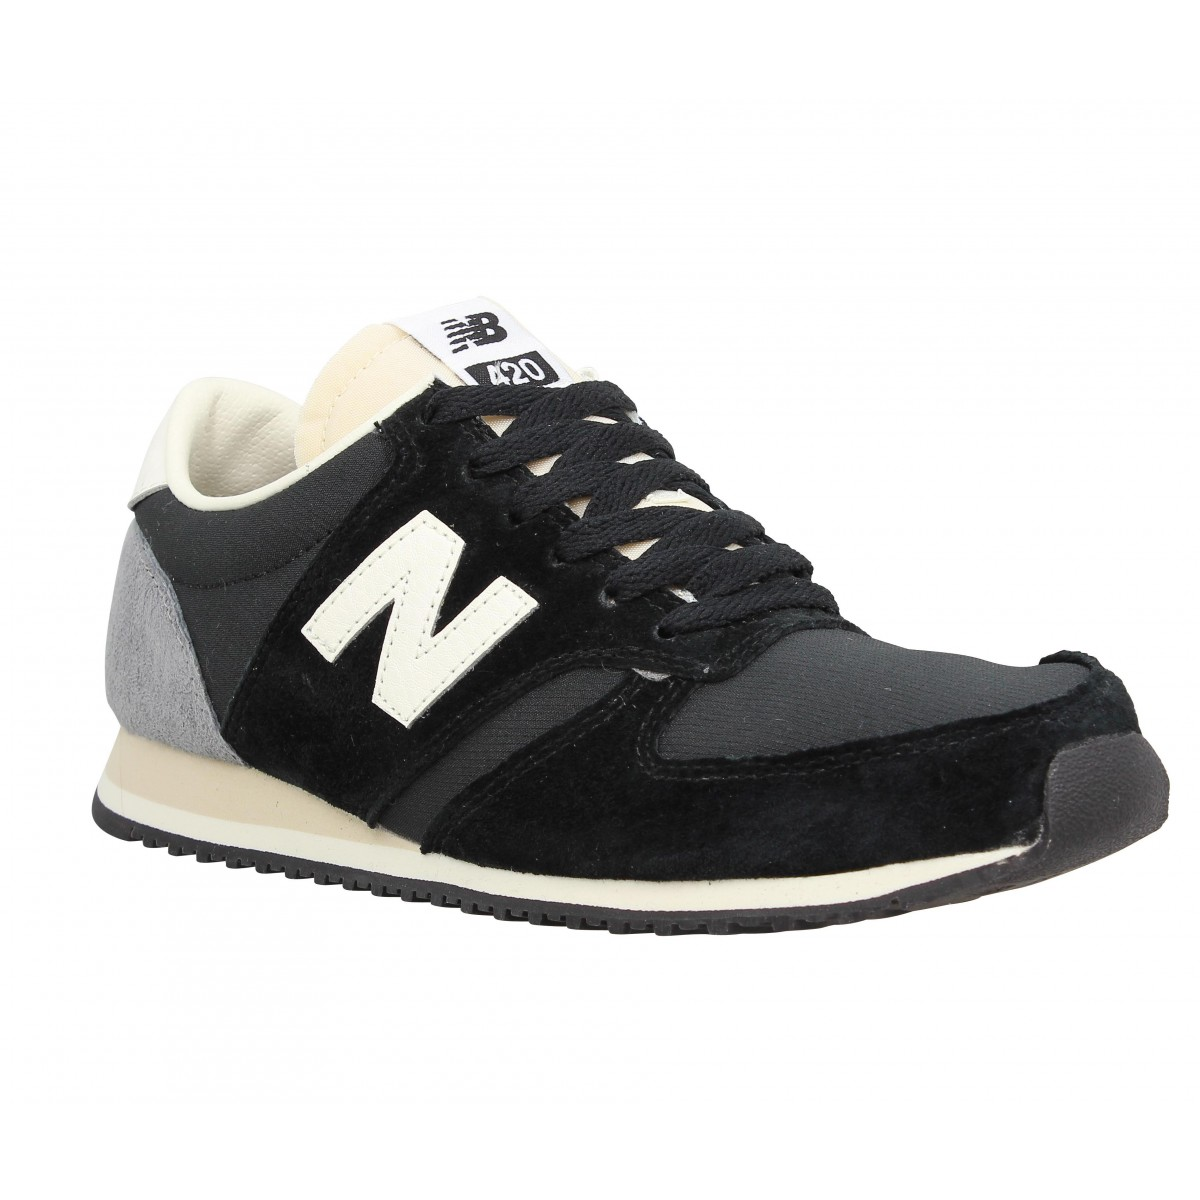 new balance 420 velours toile femme noir blanc fanny chaussures. Black Bedroom Furniture Sets. Home Design Ideas